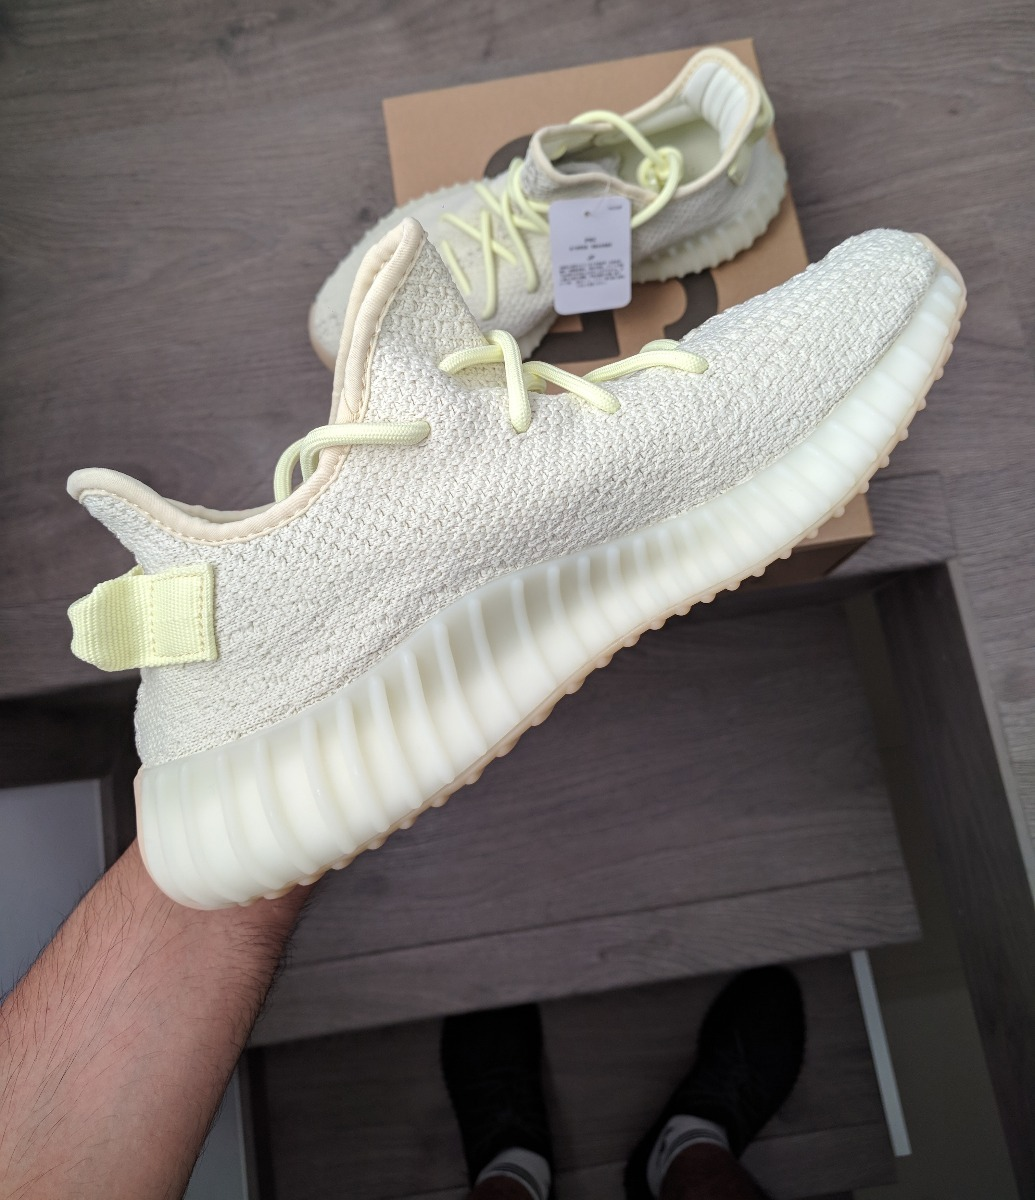 low priced 78717 12c8f adidas Yeezy Boost 350 V2 Butter